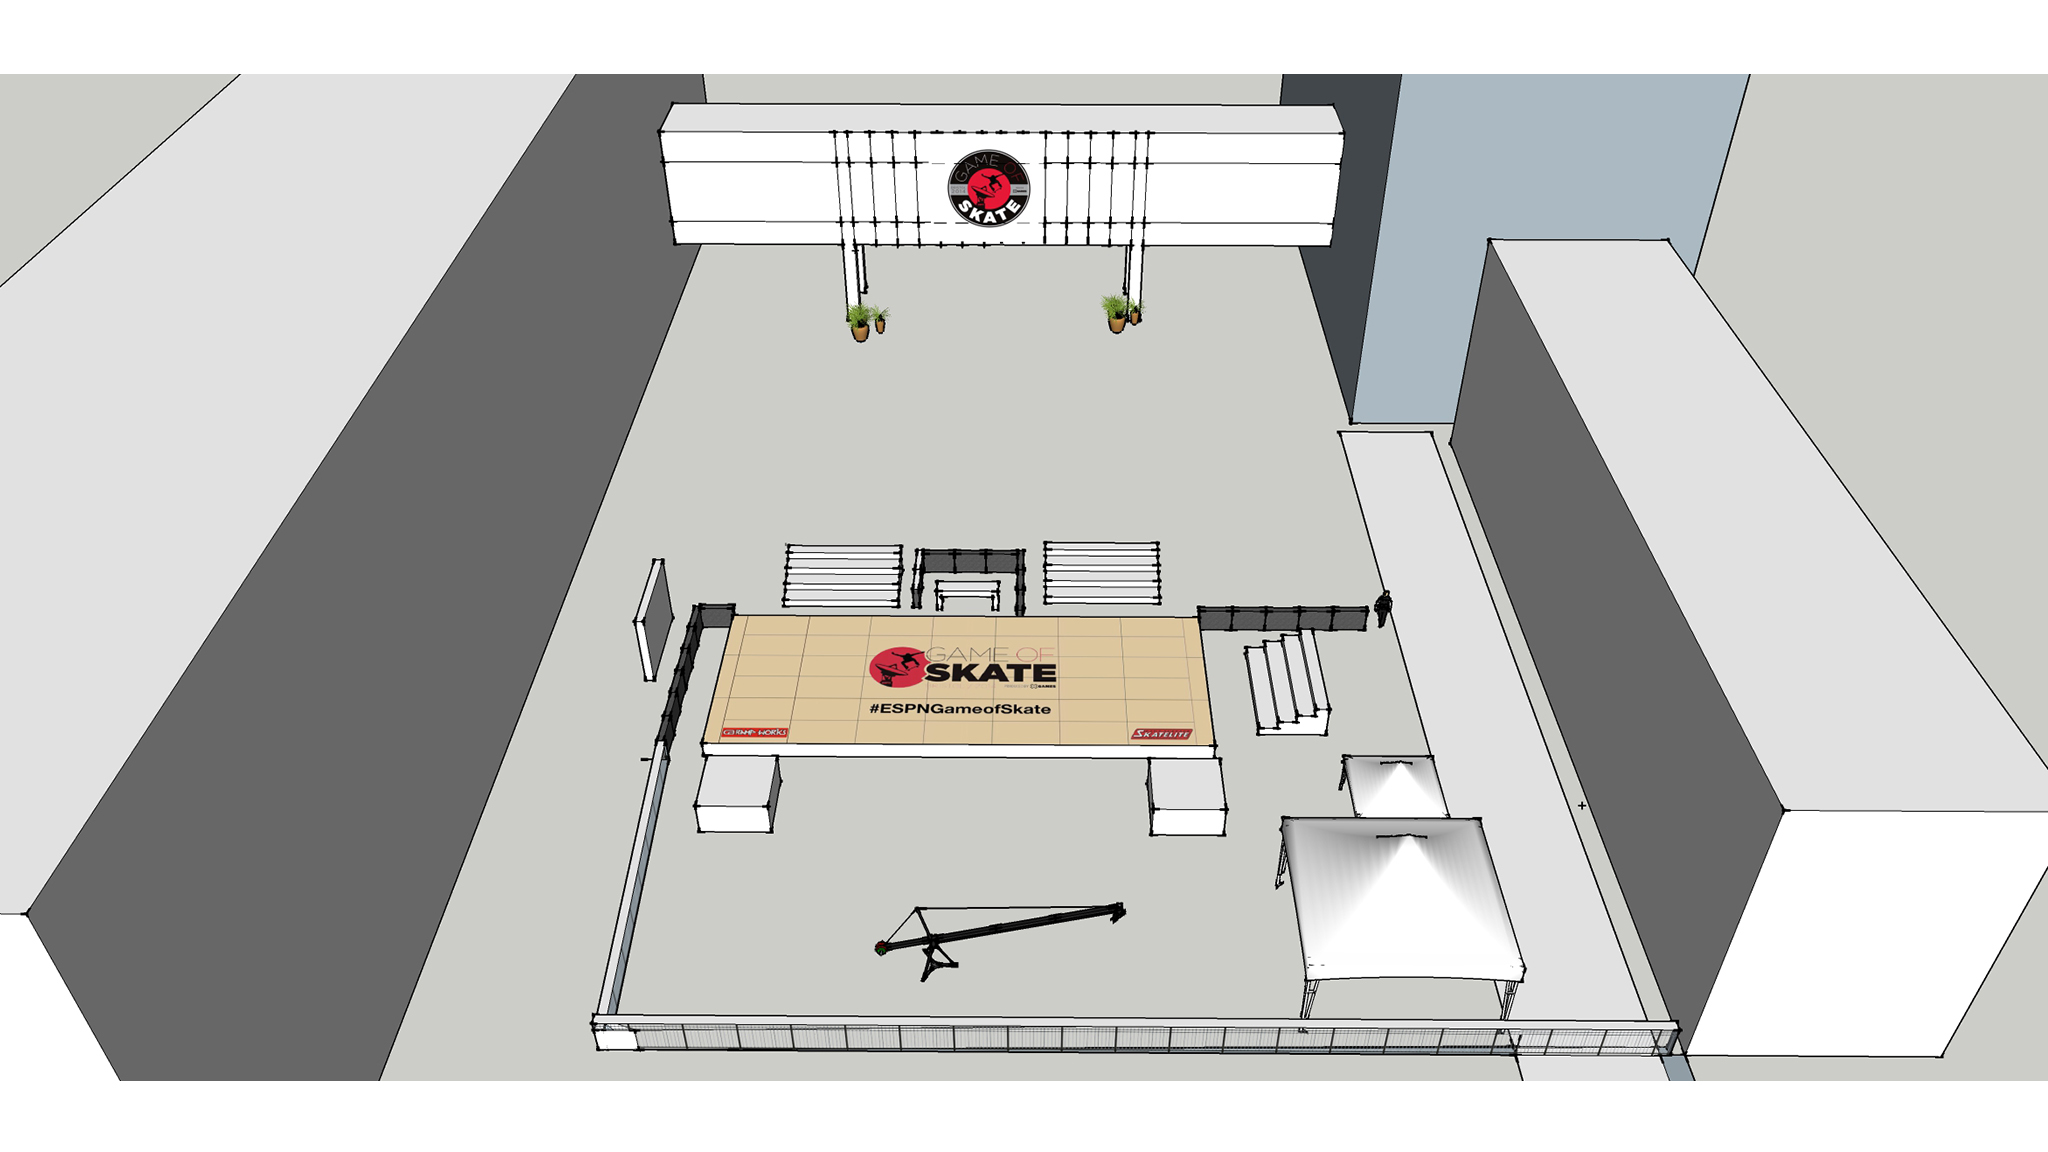 Course rendering for the Game of Skate at ESPN headquarters in Bristol, Connecticut.